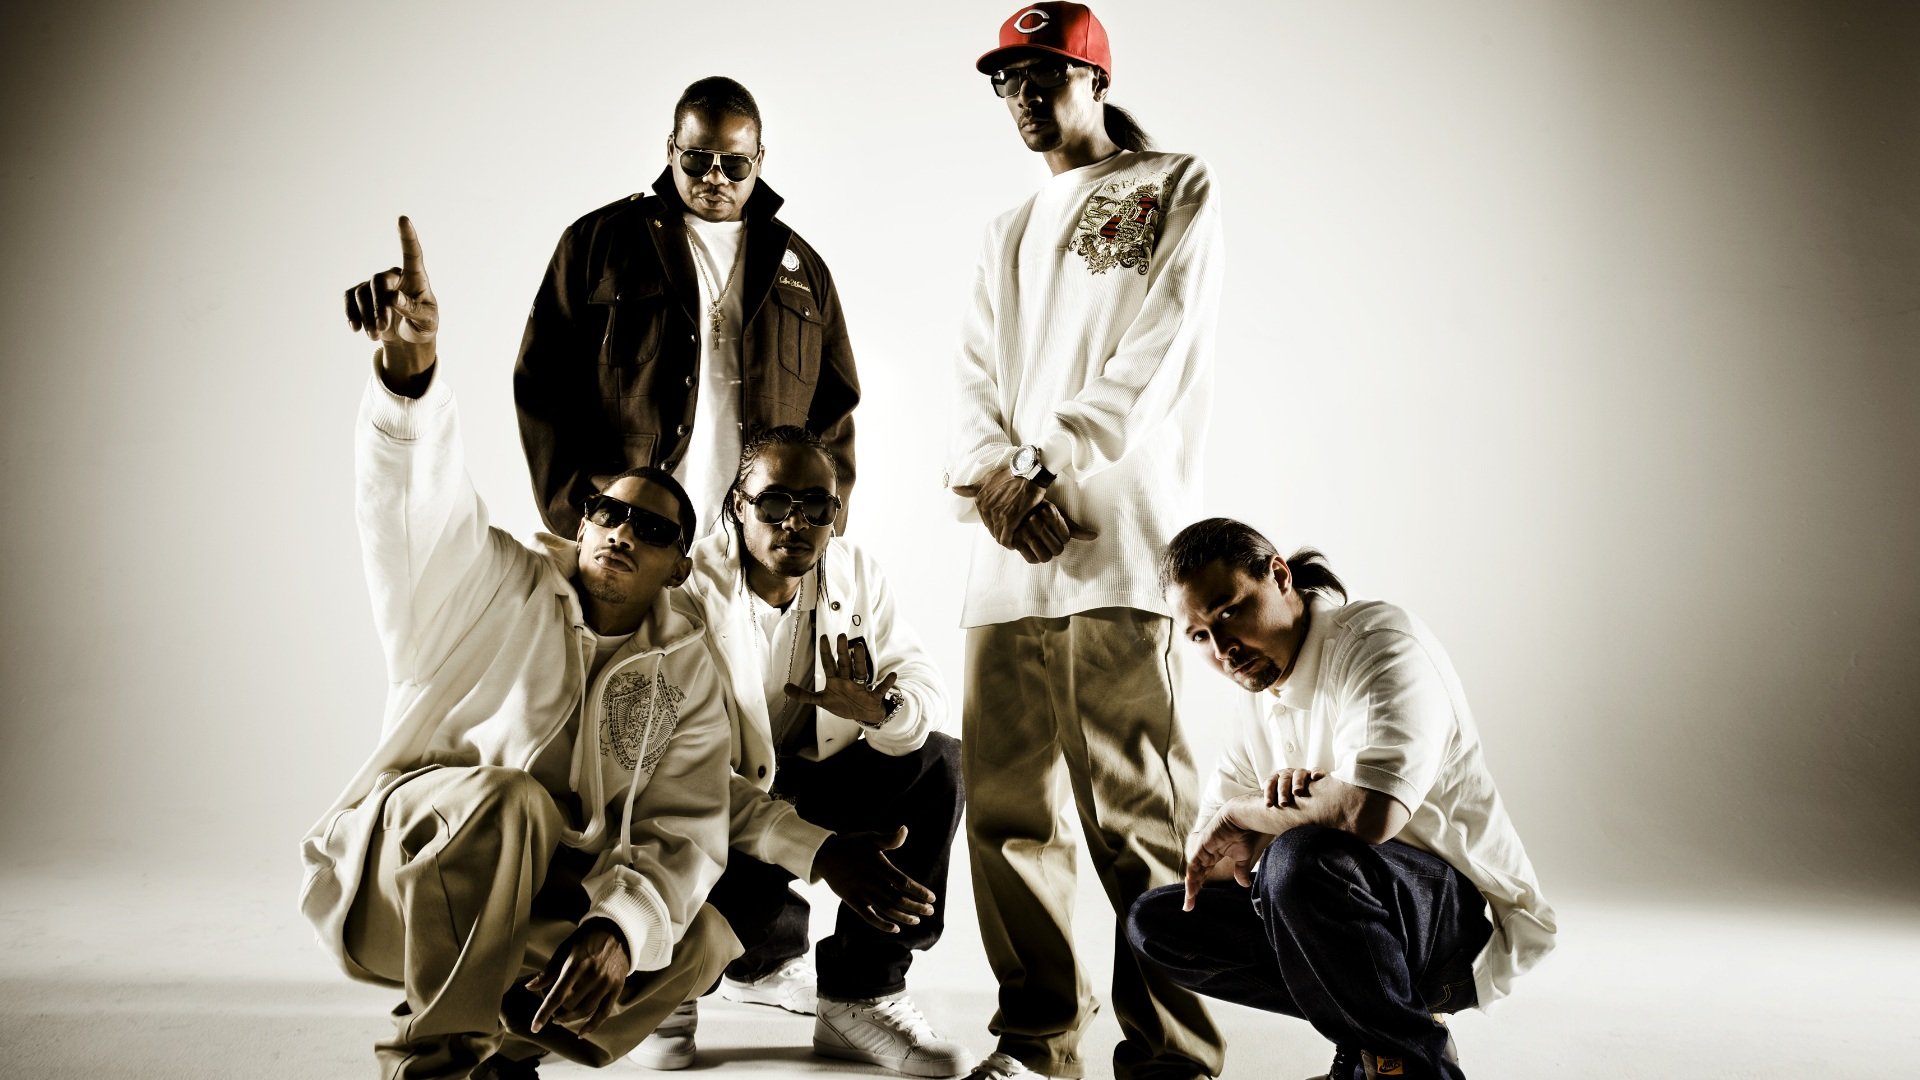 Bone Thugs N Harmony Wallpaper